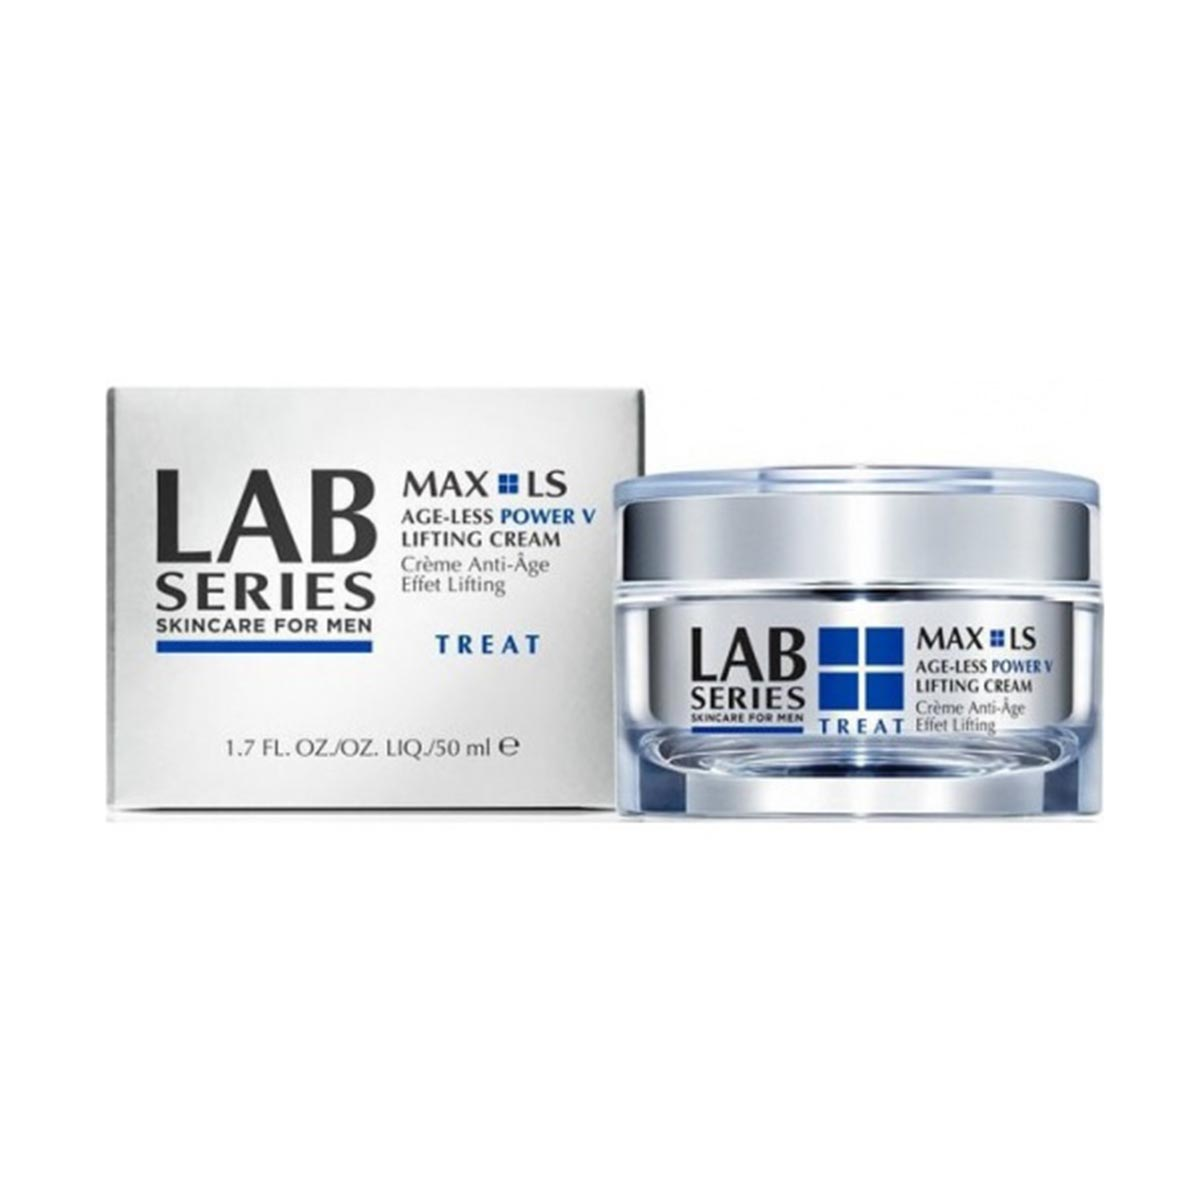 Lab series max ls v lifting cream tratamiento 50ml